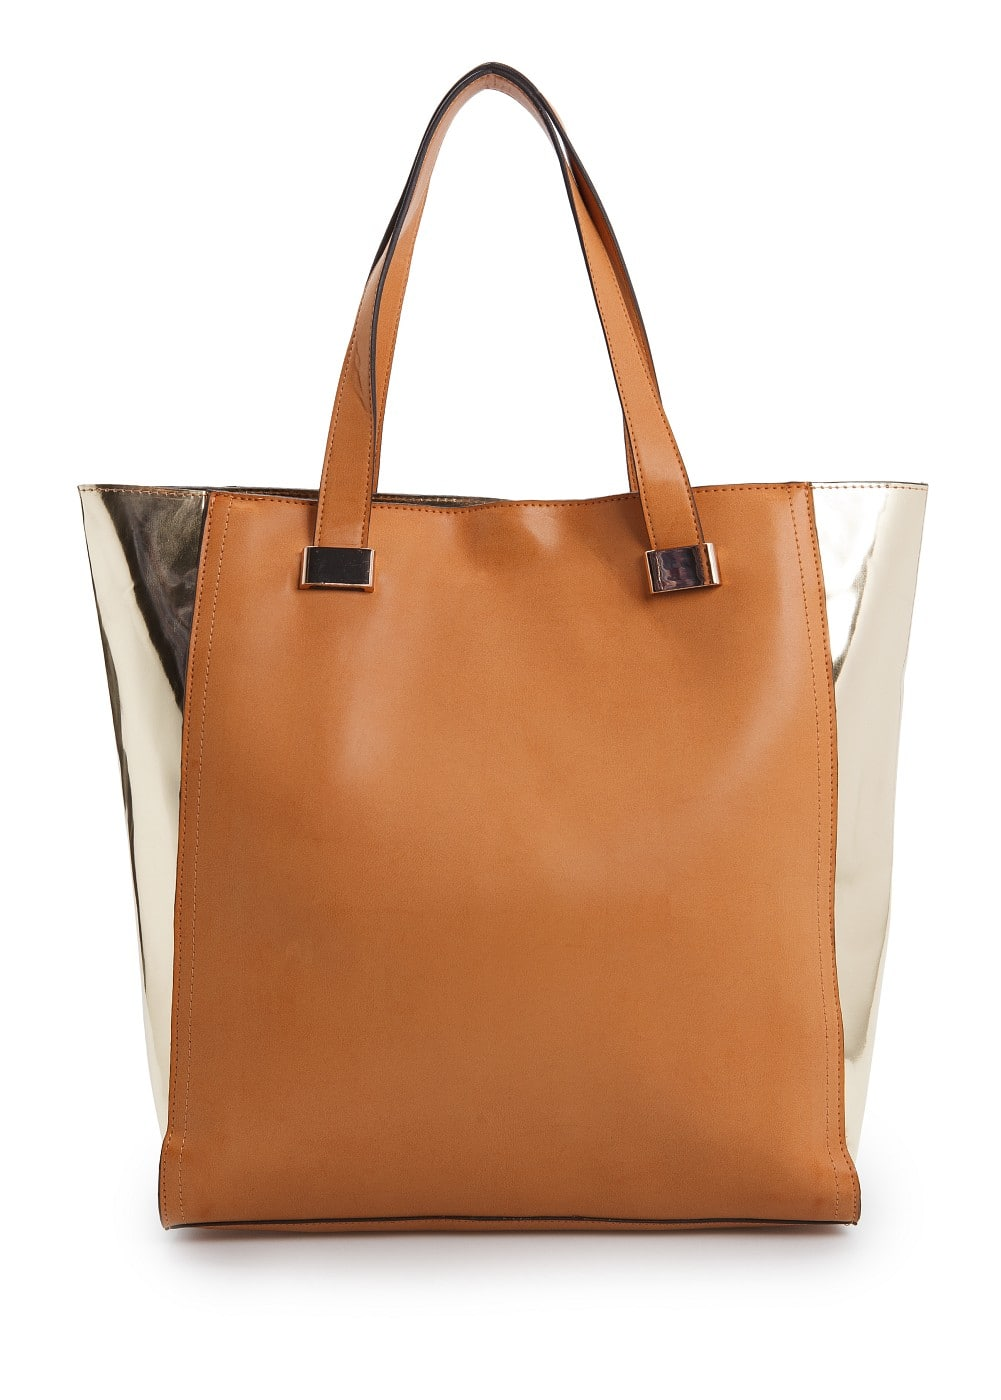 Mirror paneled shopper bag